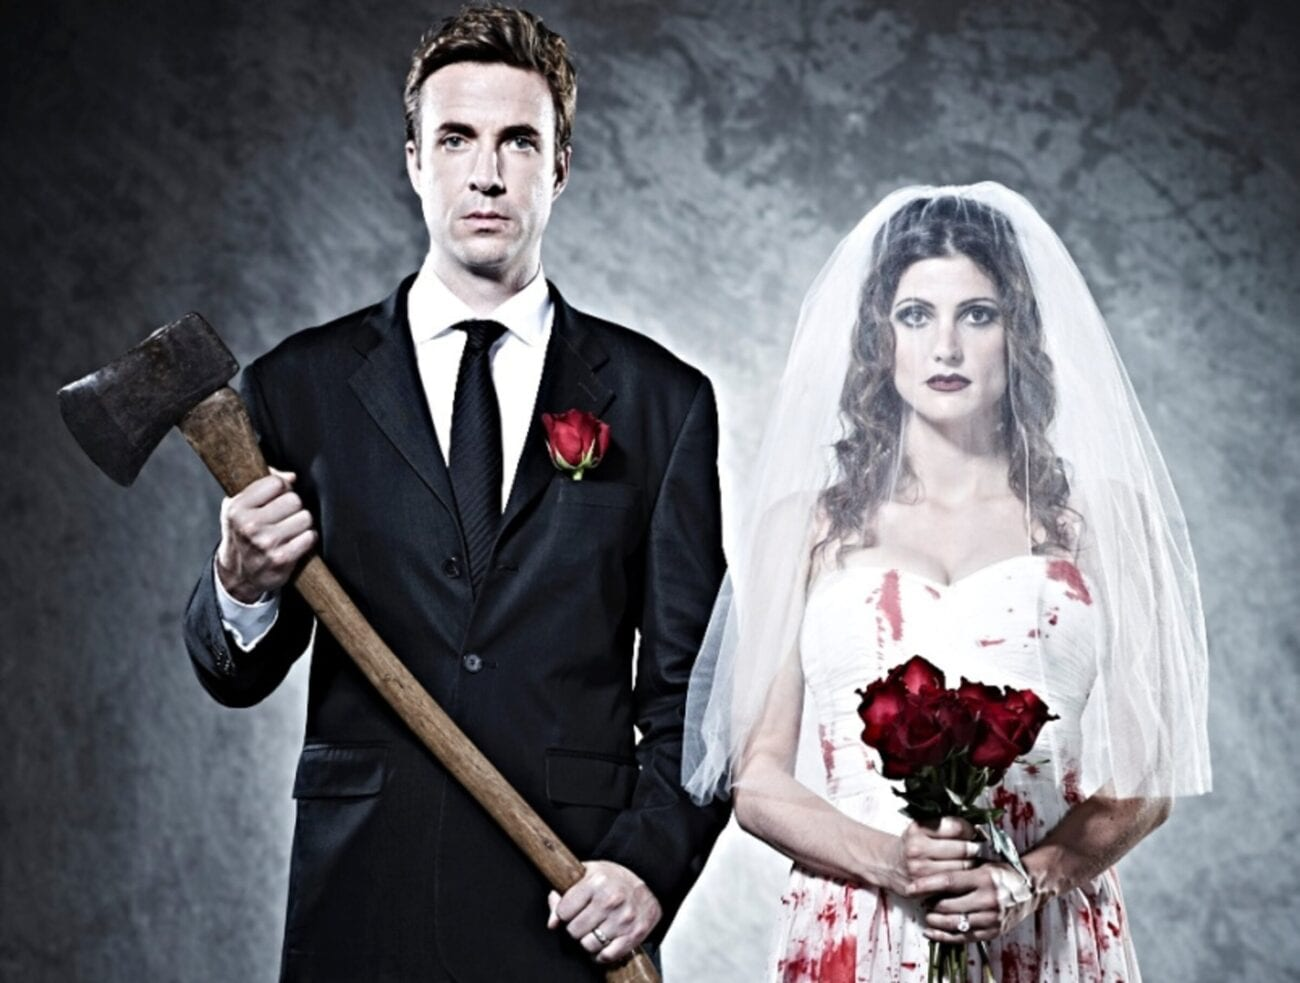 Getting married is supposed to be full of love and happiness. But have you ever heard of wedding receptions full of horror? Take a look at these stories!